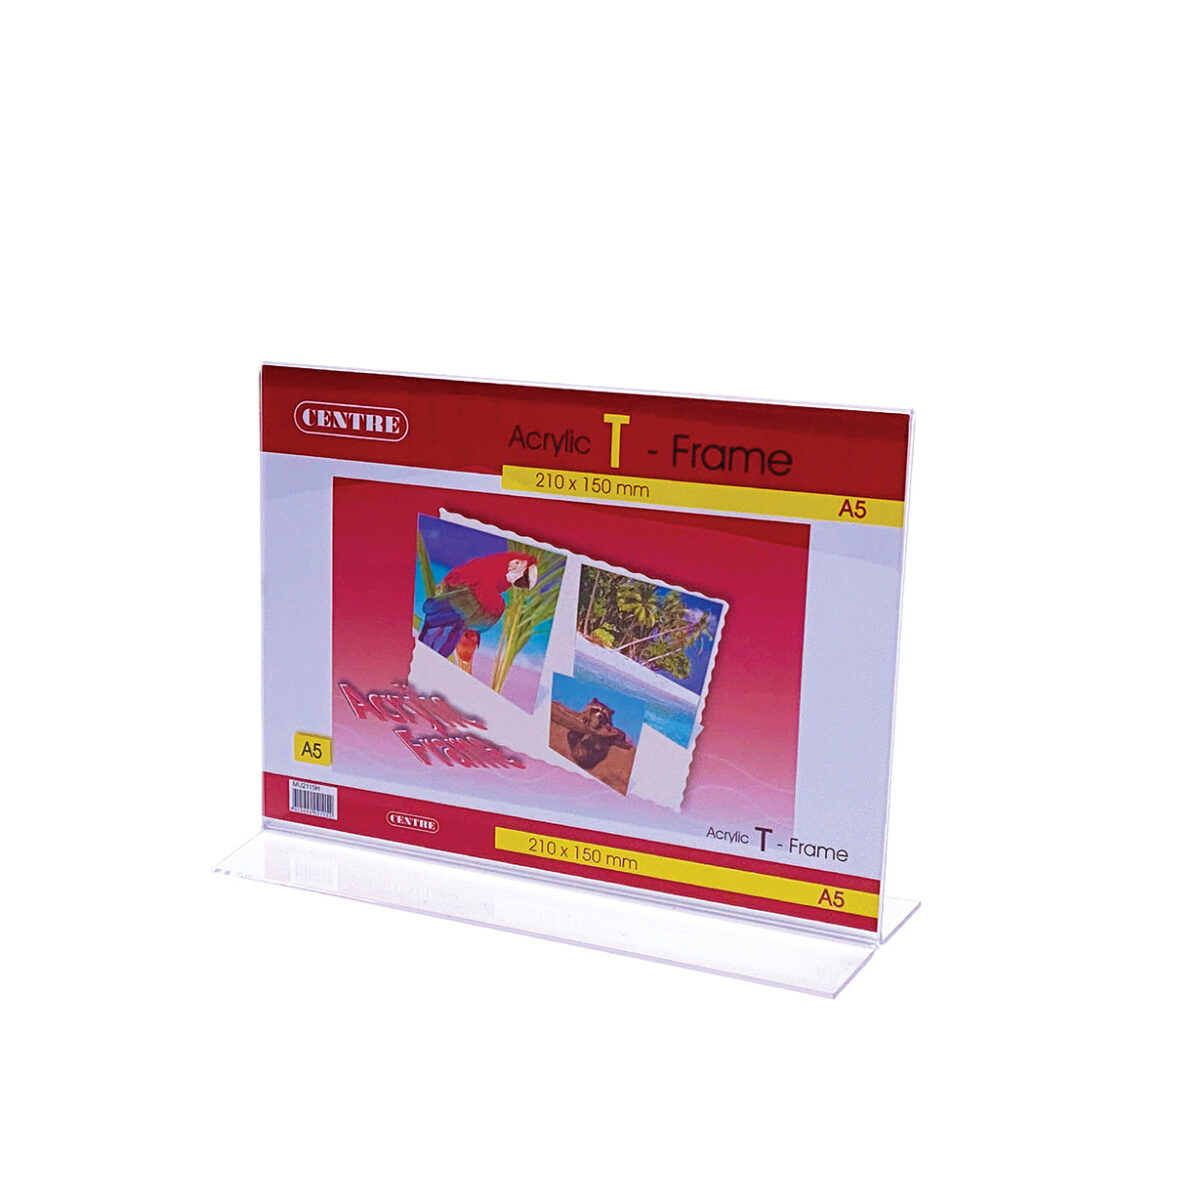 Centre Acrylic Picture Frame - T Stand Landscape A5